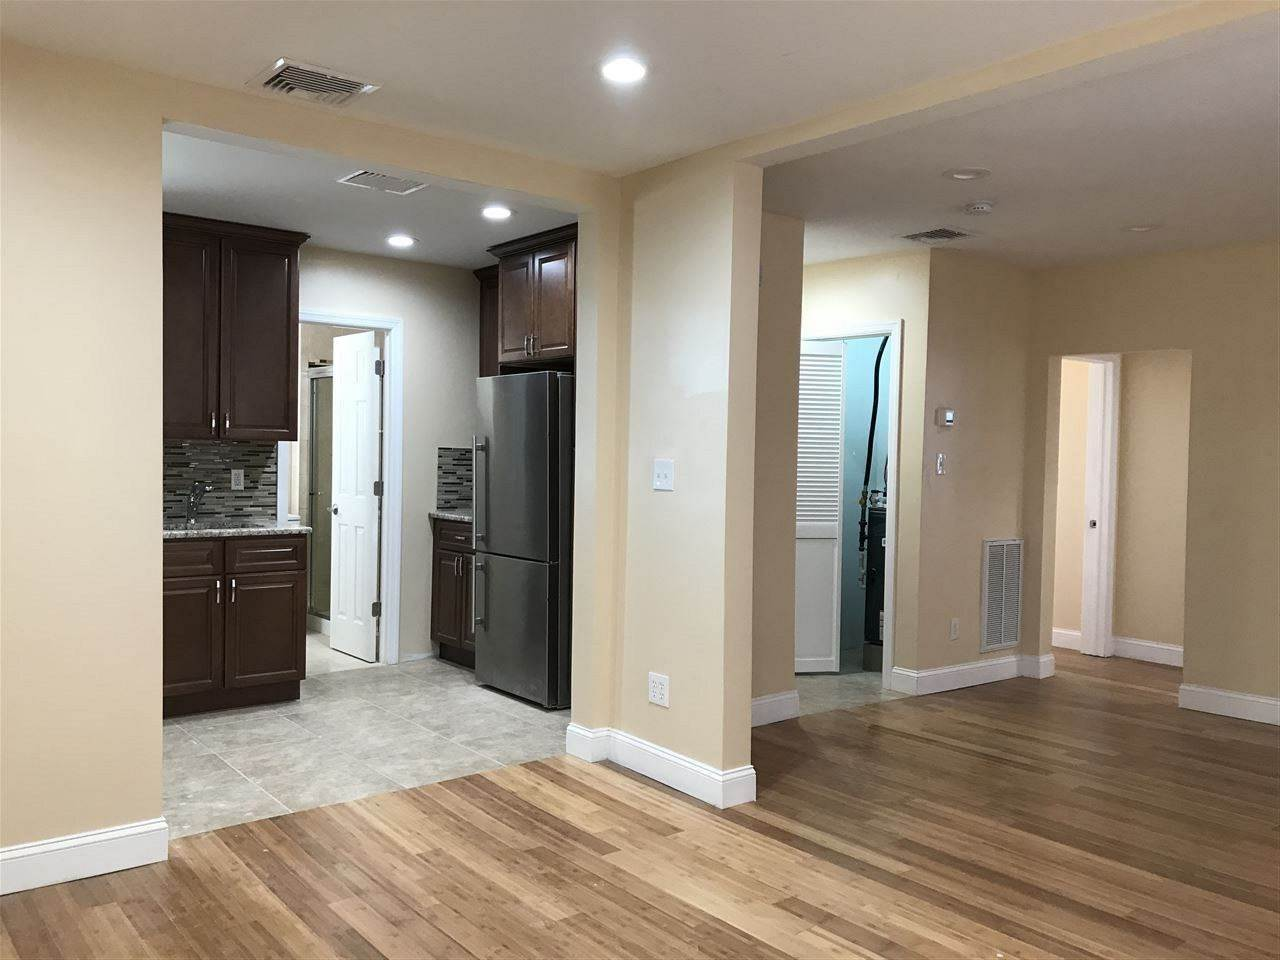 3. Apartments / Flats for Rent at 57 HAGUE STREET #4 Jersey City, New Jersey, 07307 United States